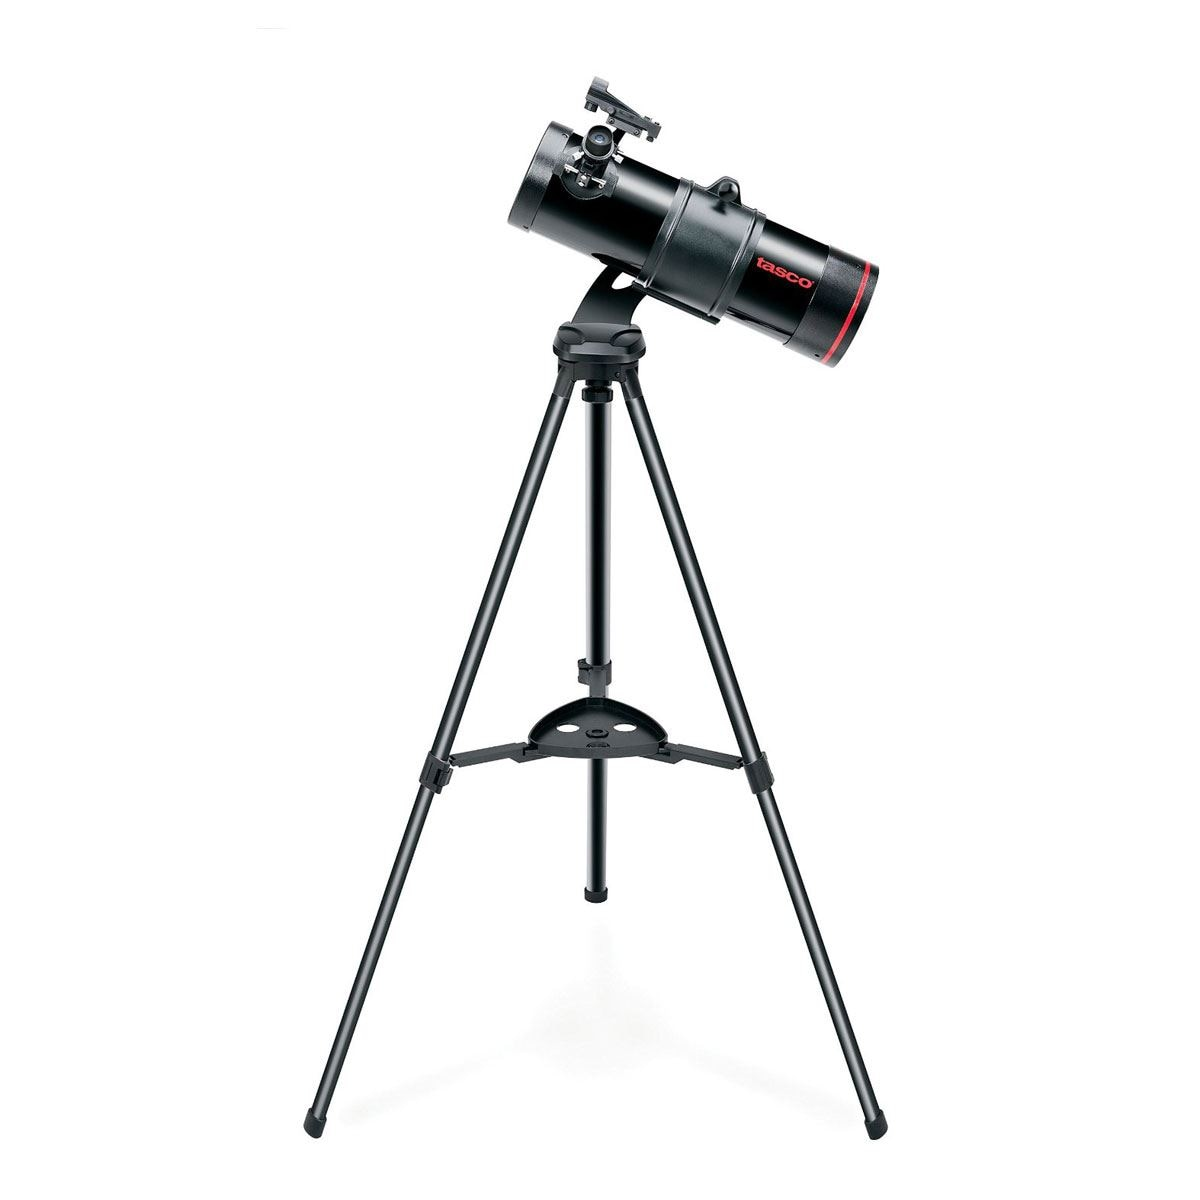 Telescopio Tasco Spacestation 375 x 1